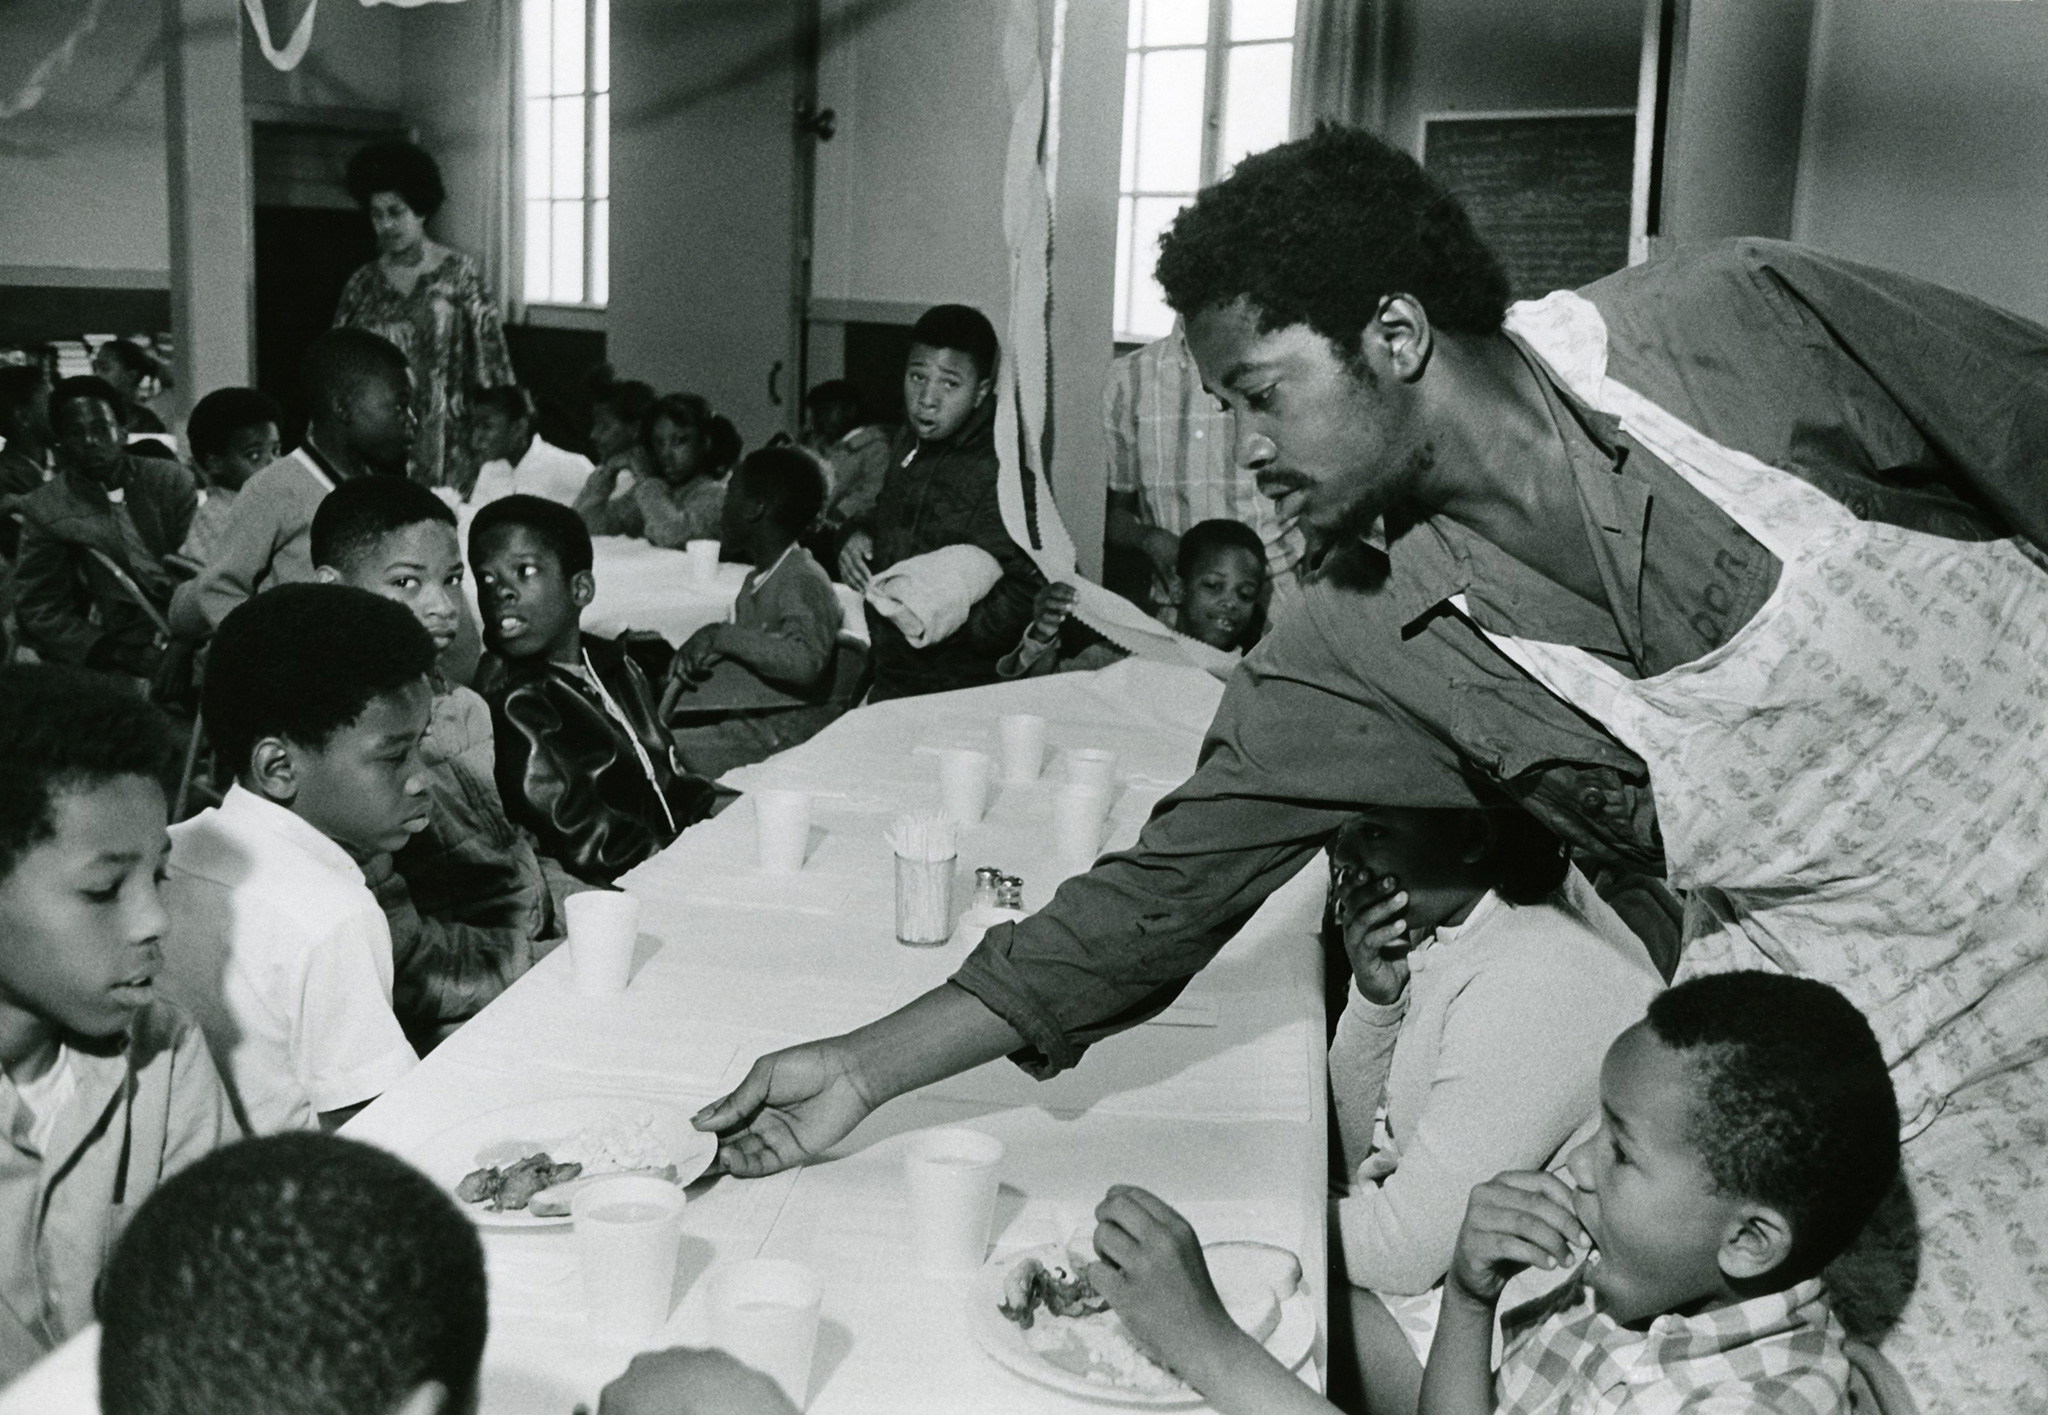 The Black Panthers and the Breakfast for Children Program